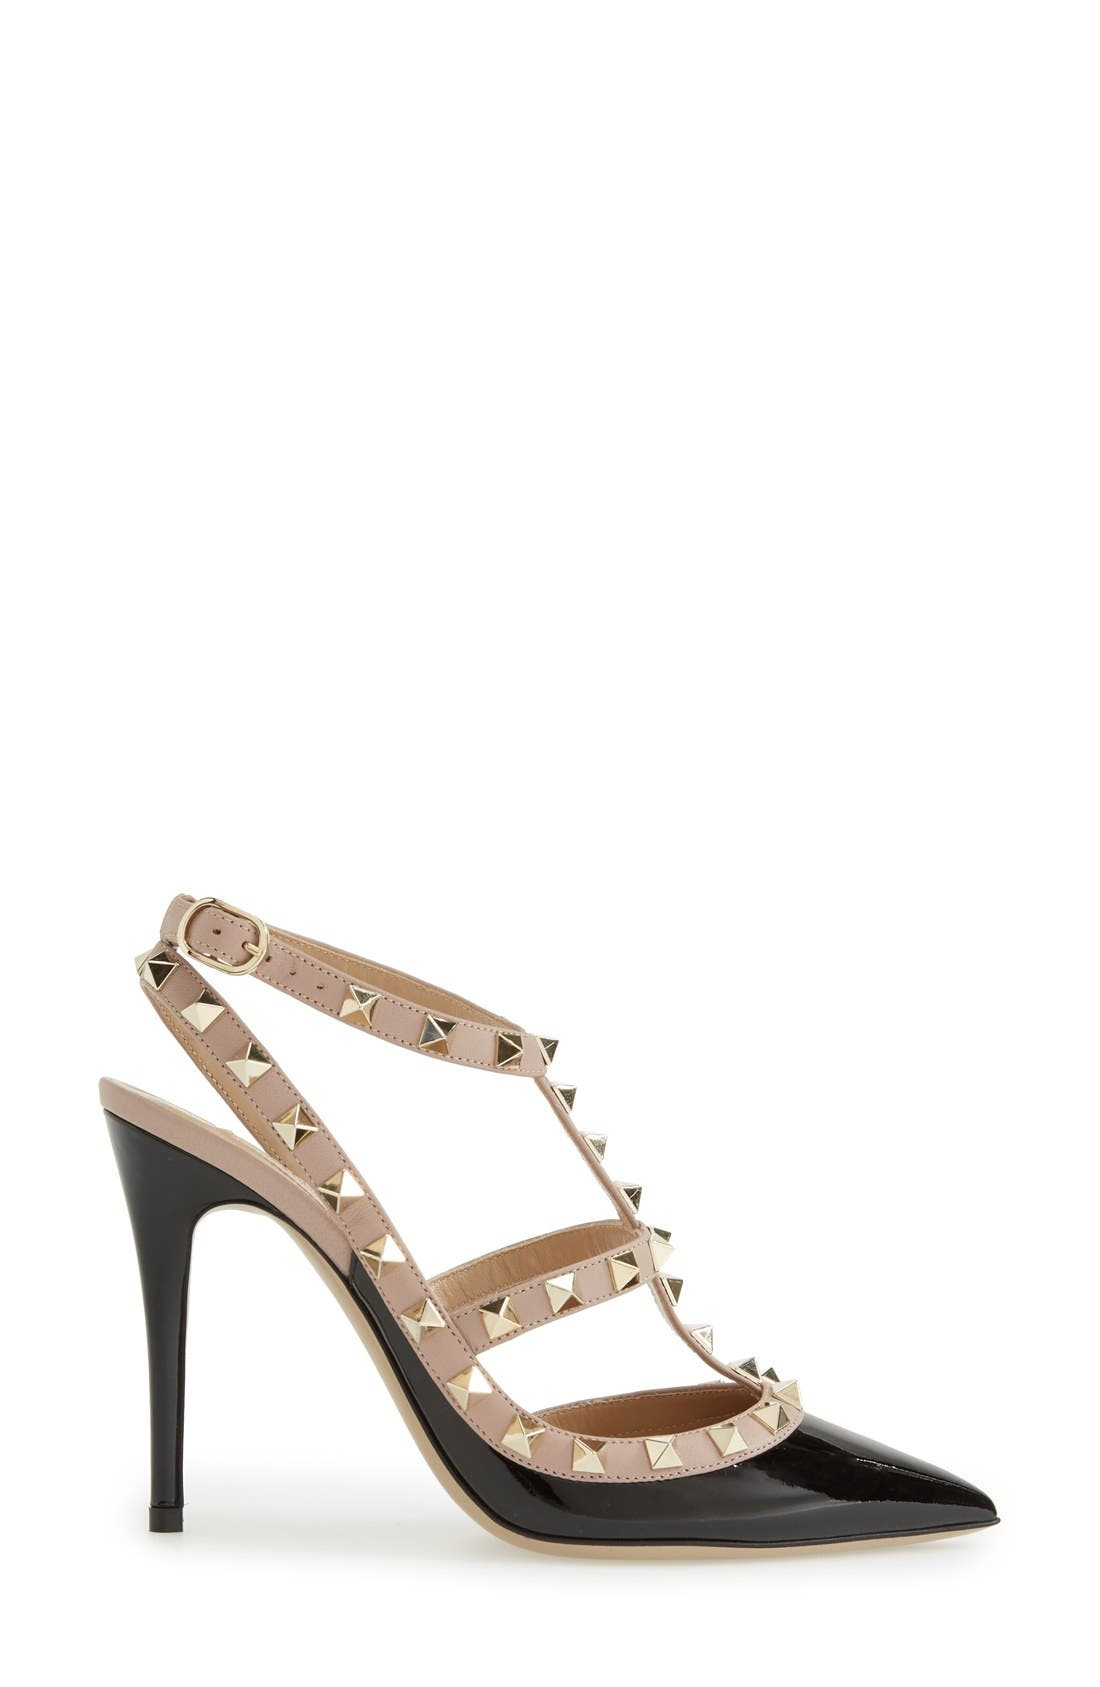 Rockstud T-Strap Pump,                             Alternate thumbnail 4, color,                             Black/ Blush Patent